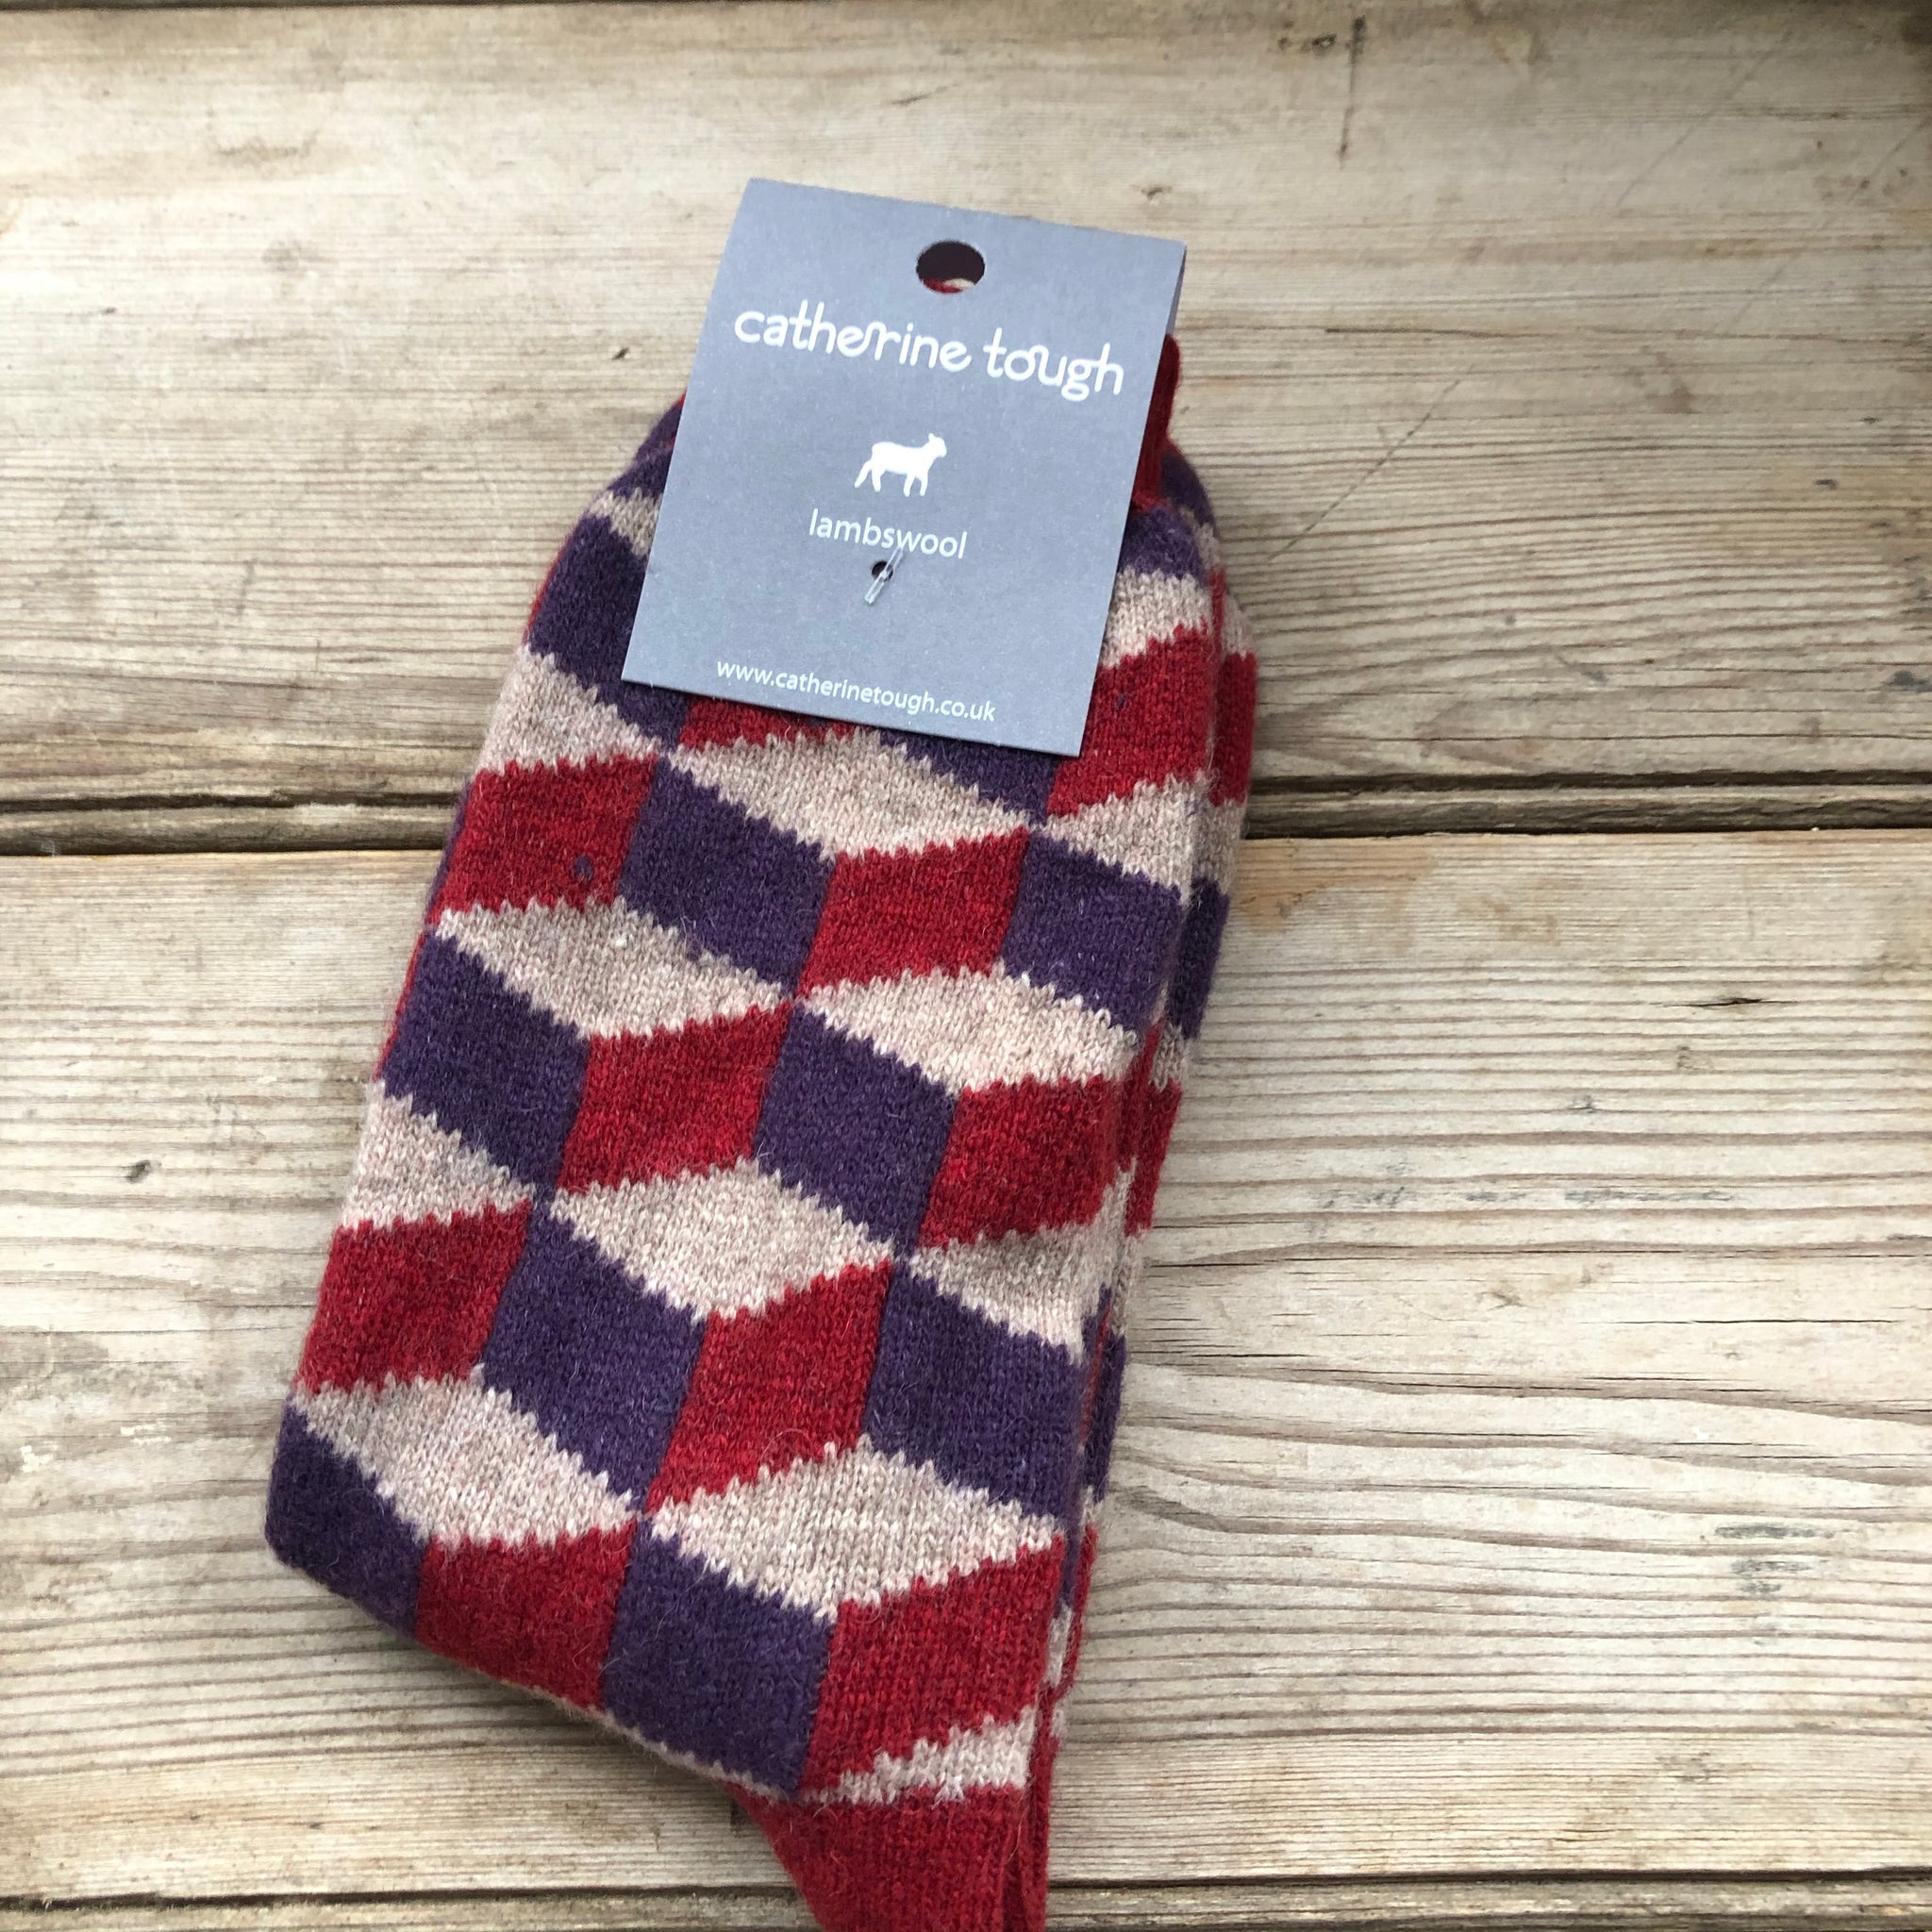 Mens Wool socks Catherine Tough